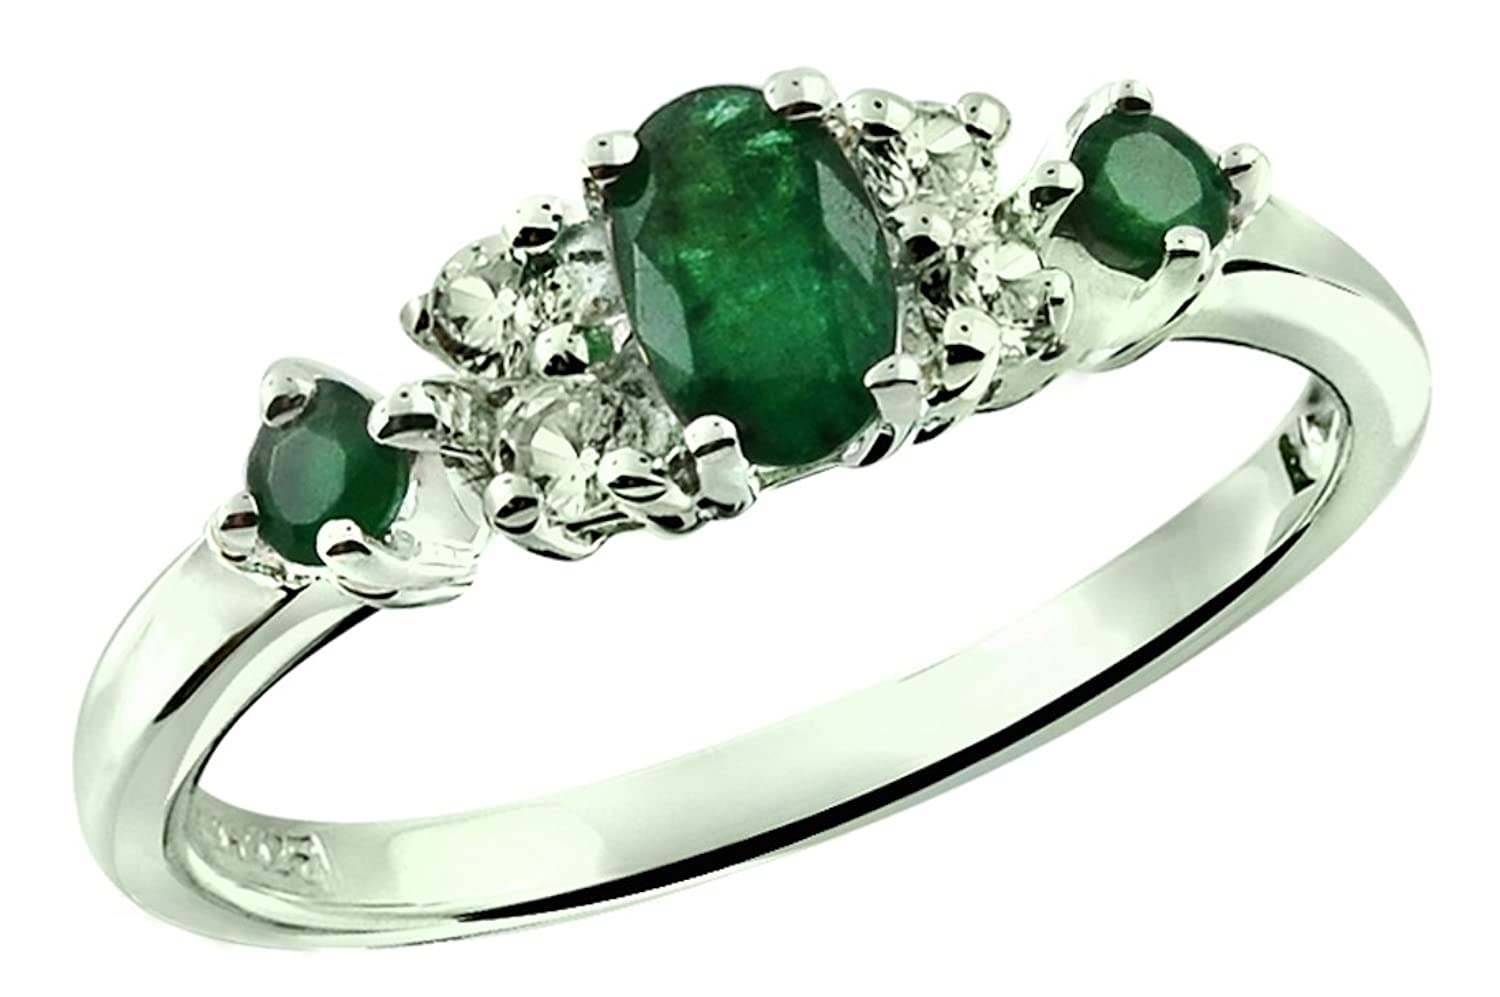 0.54 Carat Natural Emerald with White Topaz Rhodium-Plated 925 Sterling Silver Ring